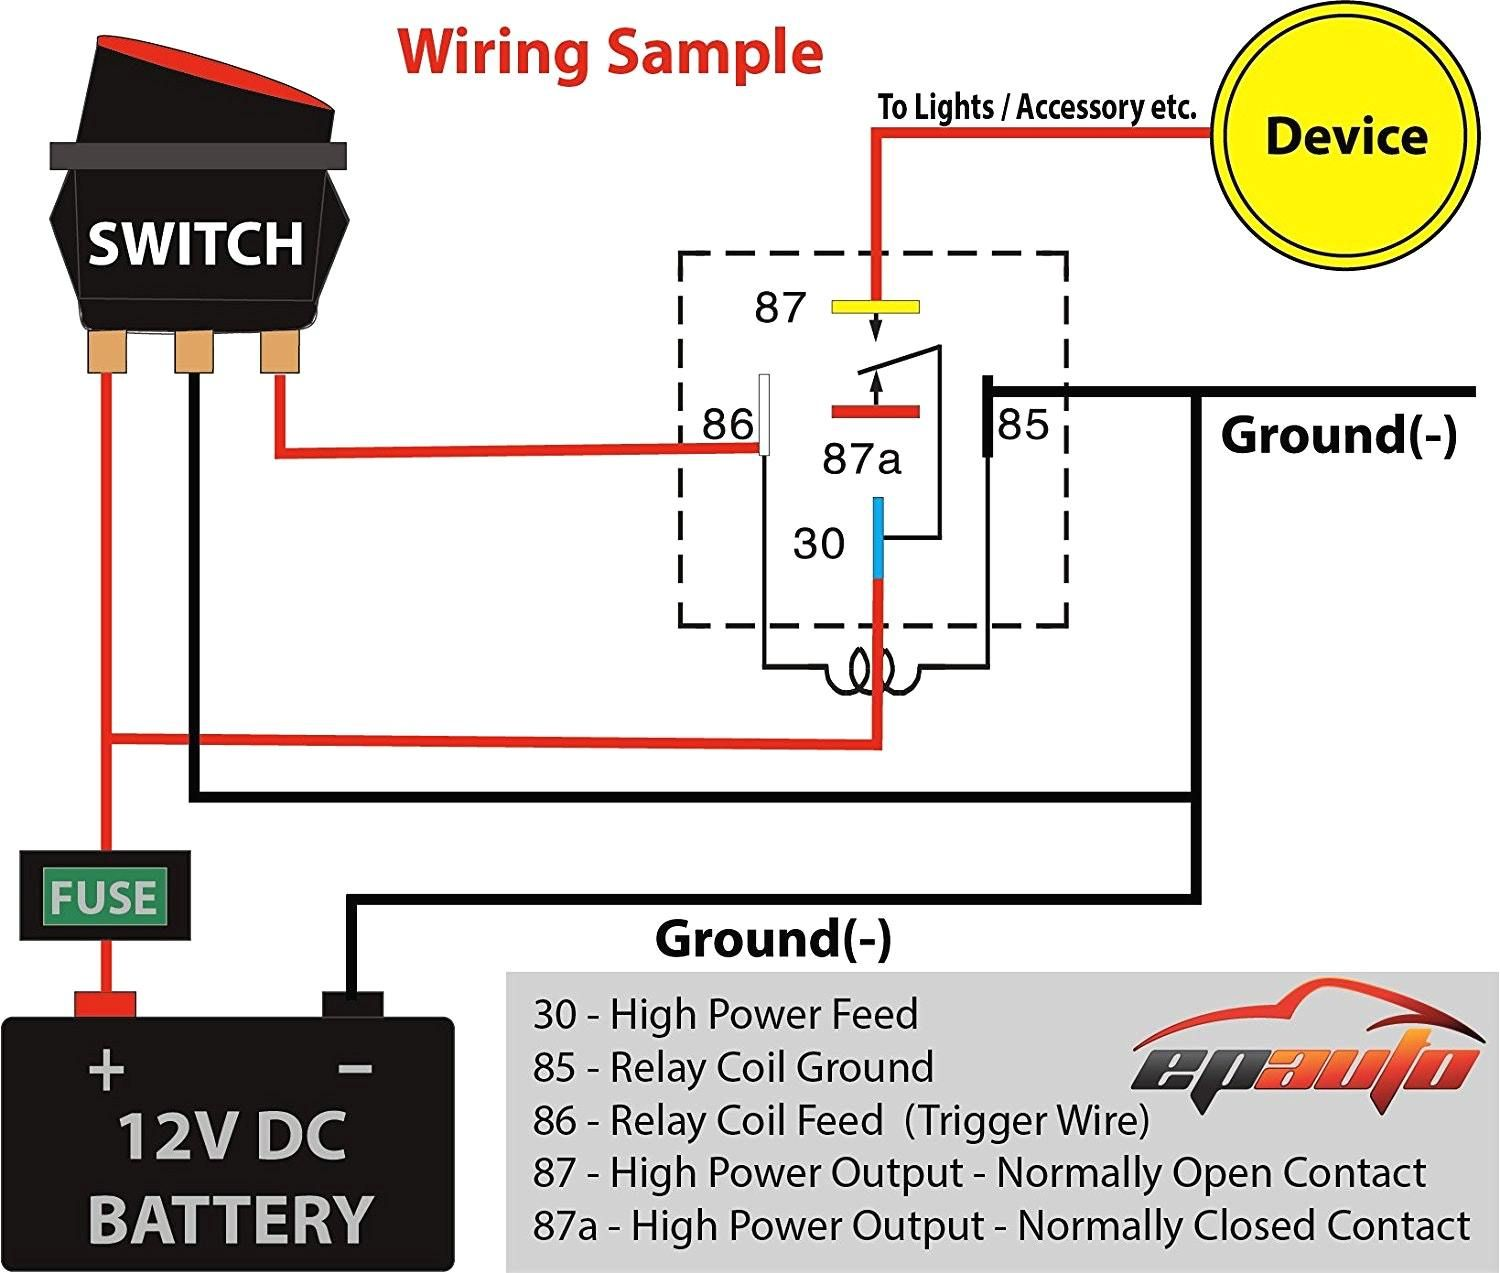 small resolution of bosch relay wiring diagram forn automotivens gtsparkplugs and pin prong with in for horn wires electrical circuit sample lines